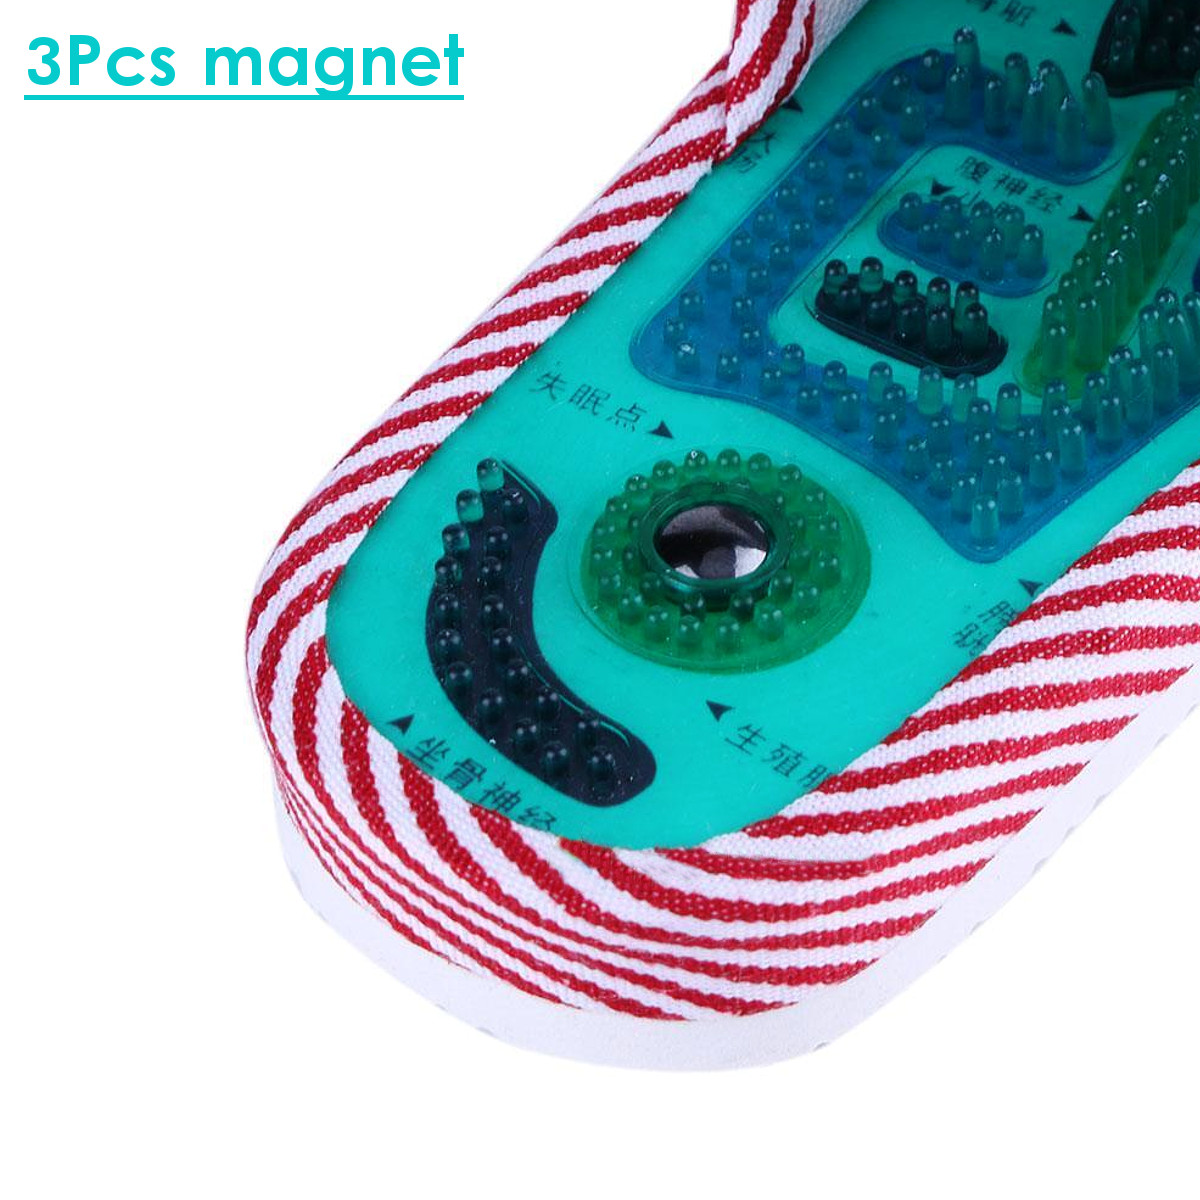 1 Pair Foot Massage Slipper Health Feet Care Shoes Sandals Magnetic Pad Acupuncture